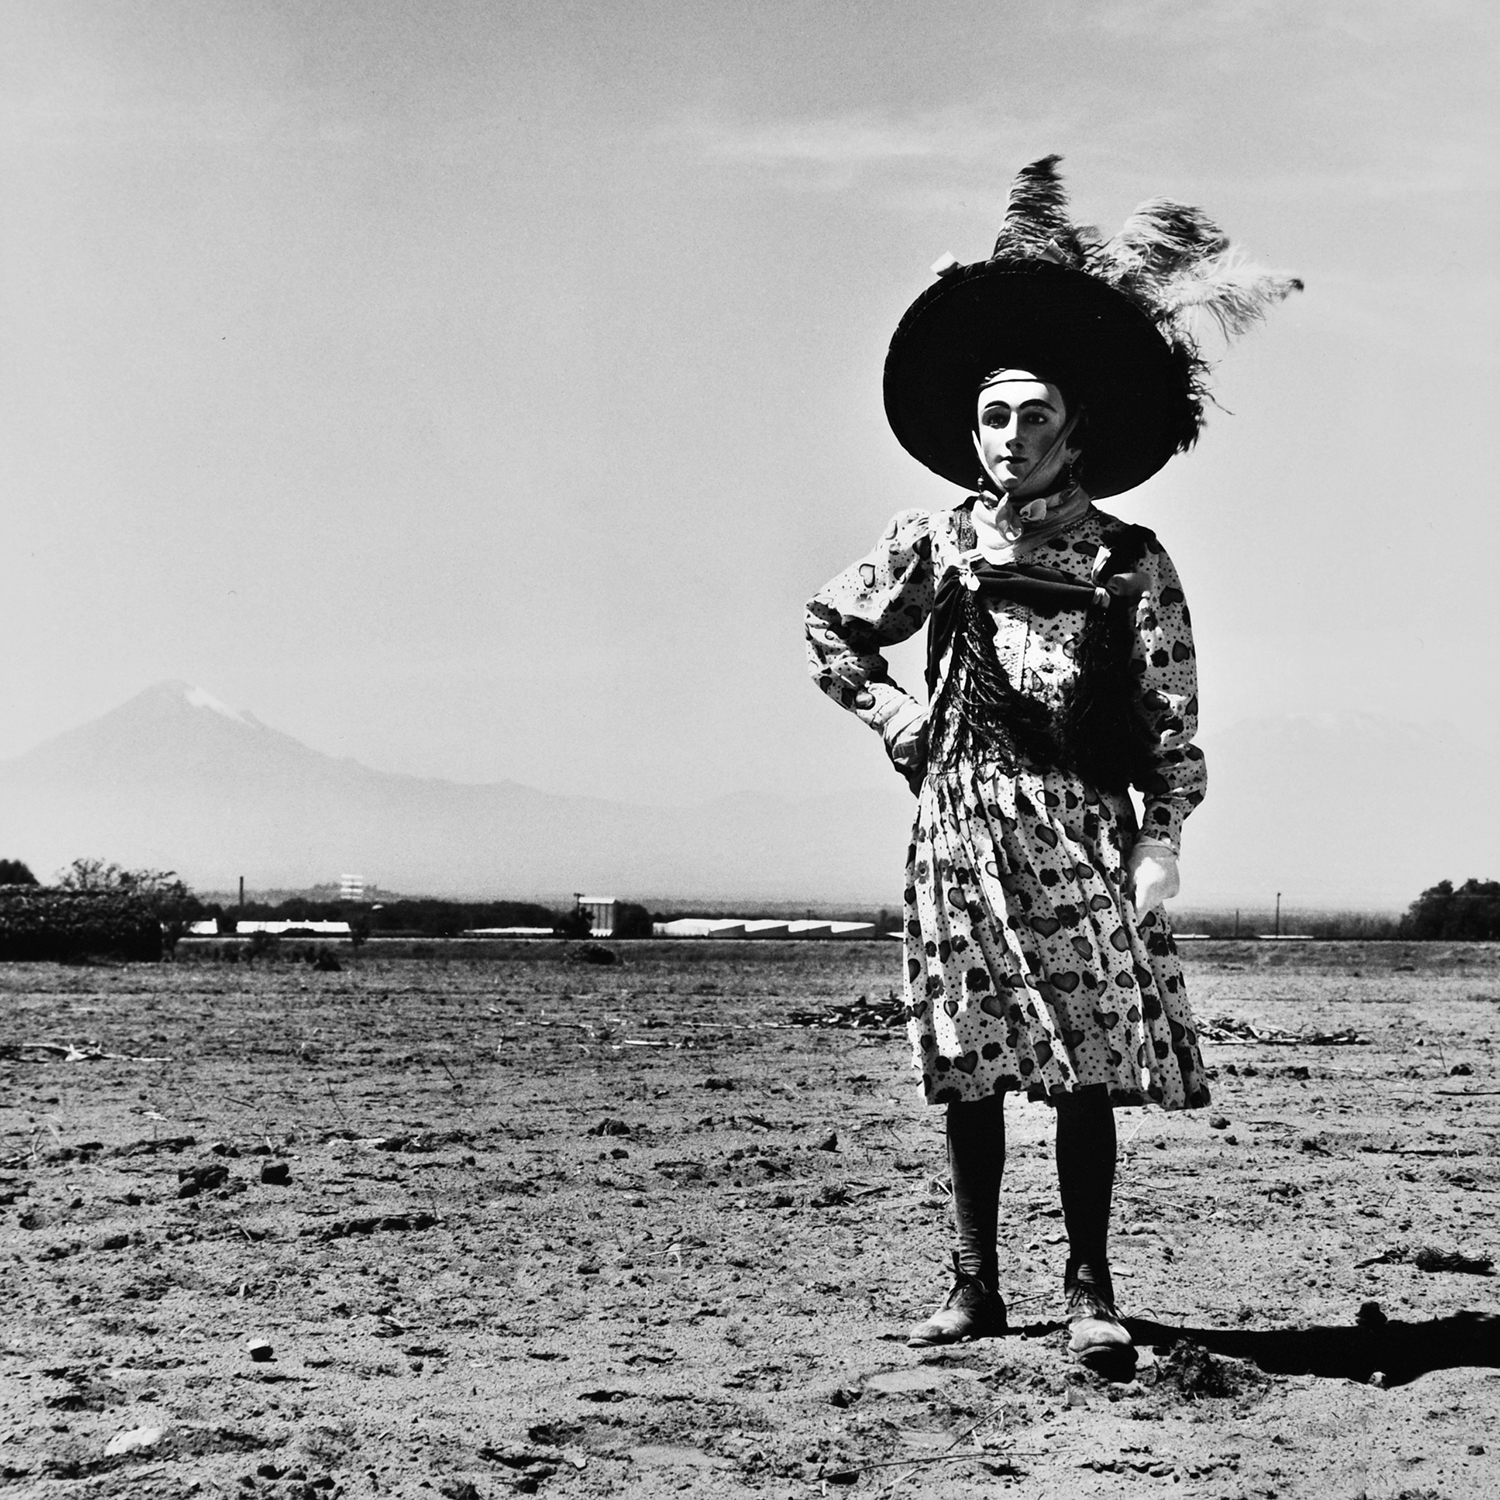 Graciela Iturbide, Carnaval, Tlaxcala, Mexico, 1974  © the artist and courtesy ROSEGALLERY